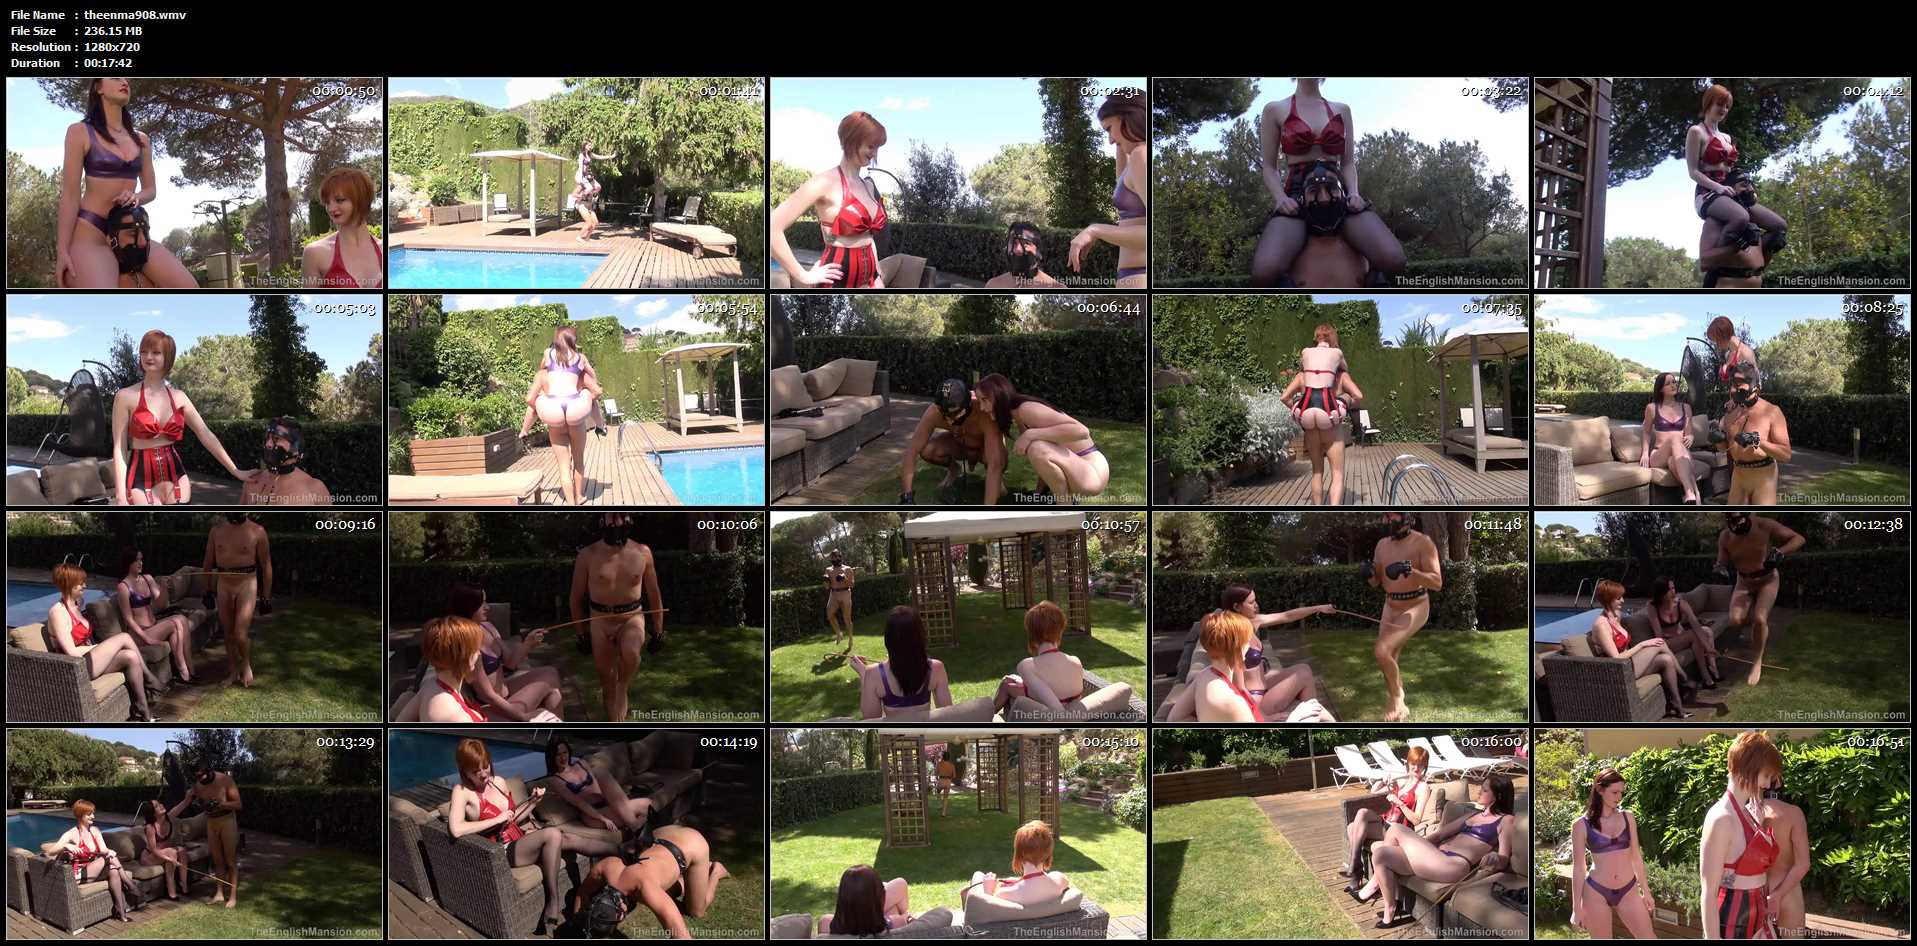 Miss Vivienne lAmour, Miss Zara In Scene: Poolside Riding - THEENGLISHMANSION - HD/720p/WMV